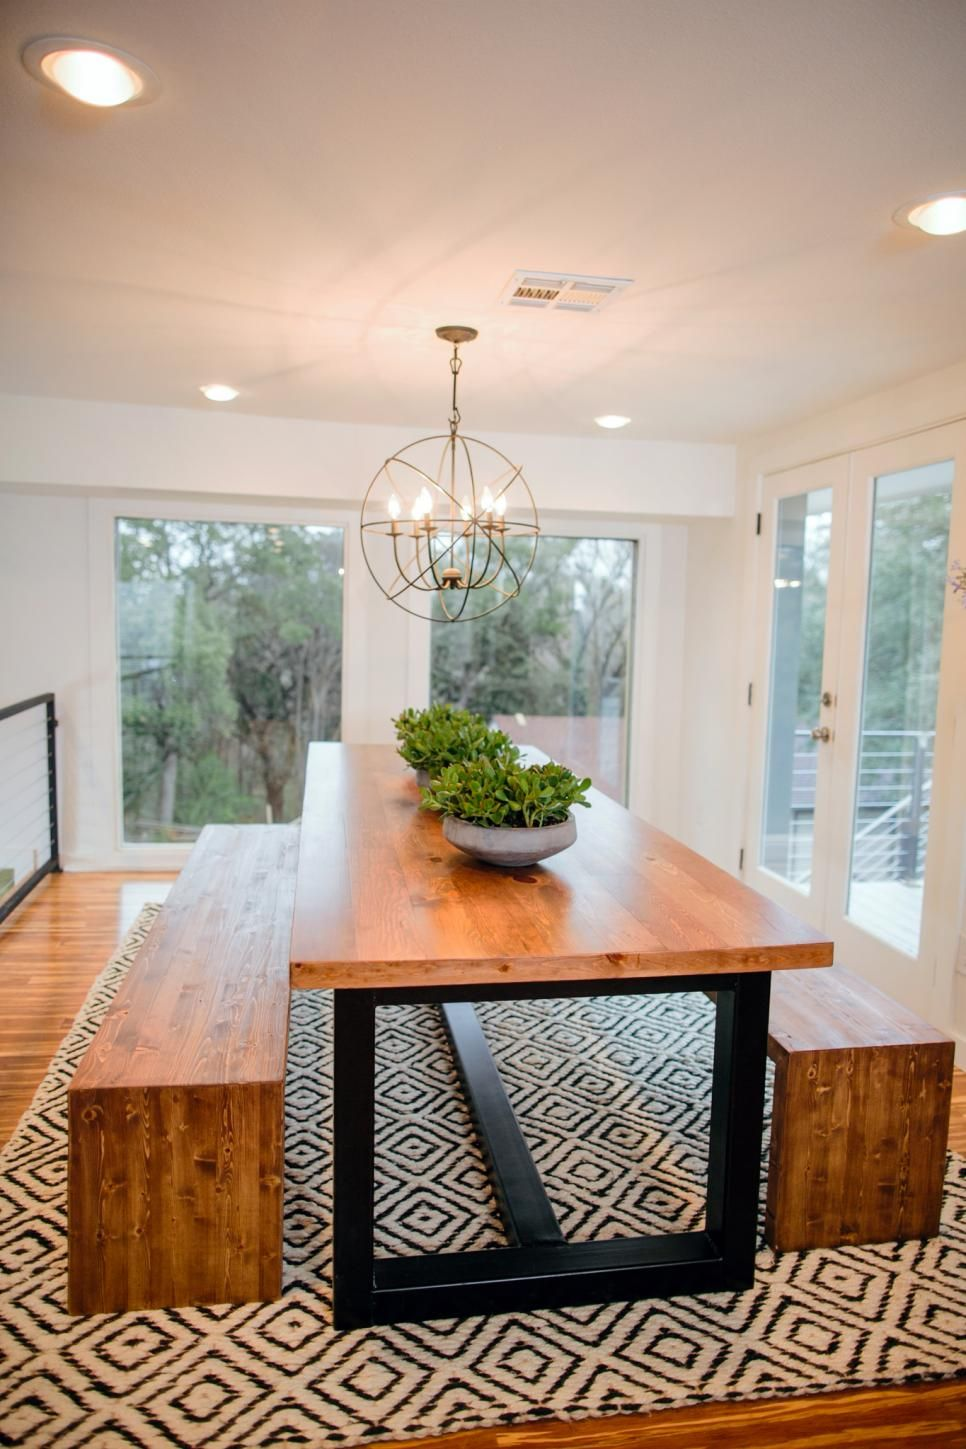 Modern Farmhouse Kitchen Table Clint Harp's Furniture Designs From Fixer Upper  Joanna Gaines